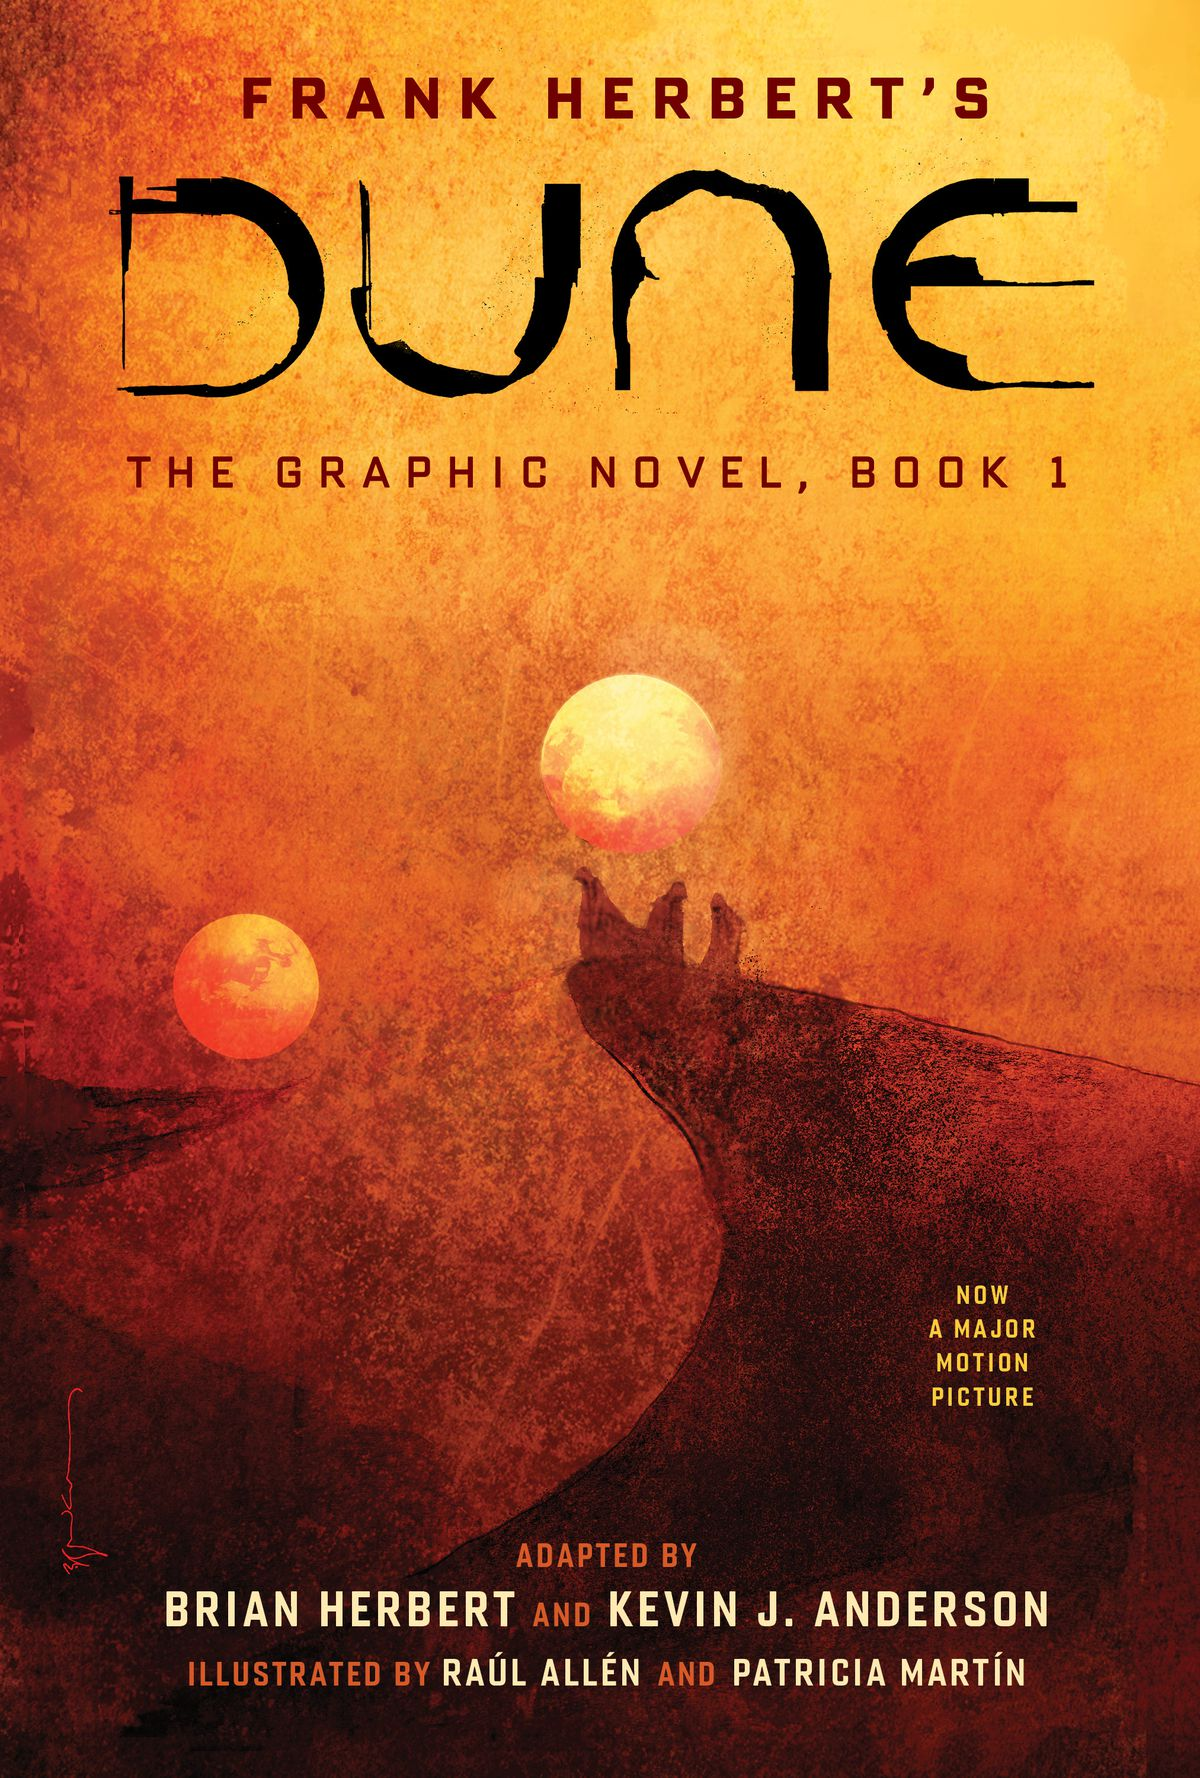 Cover art, and text, for Dune: The Graphic Novel, Book 1